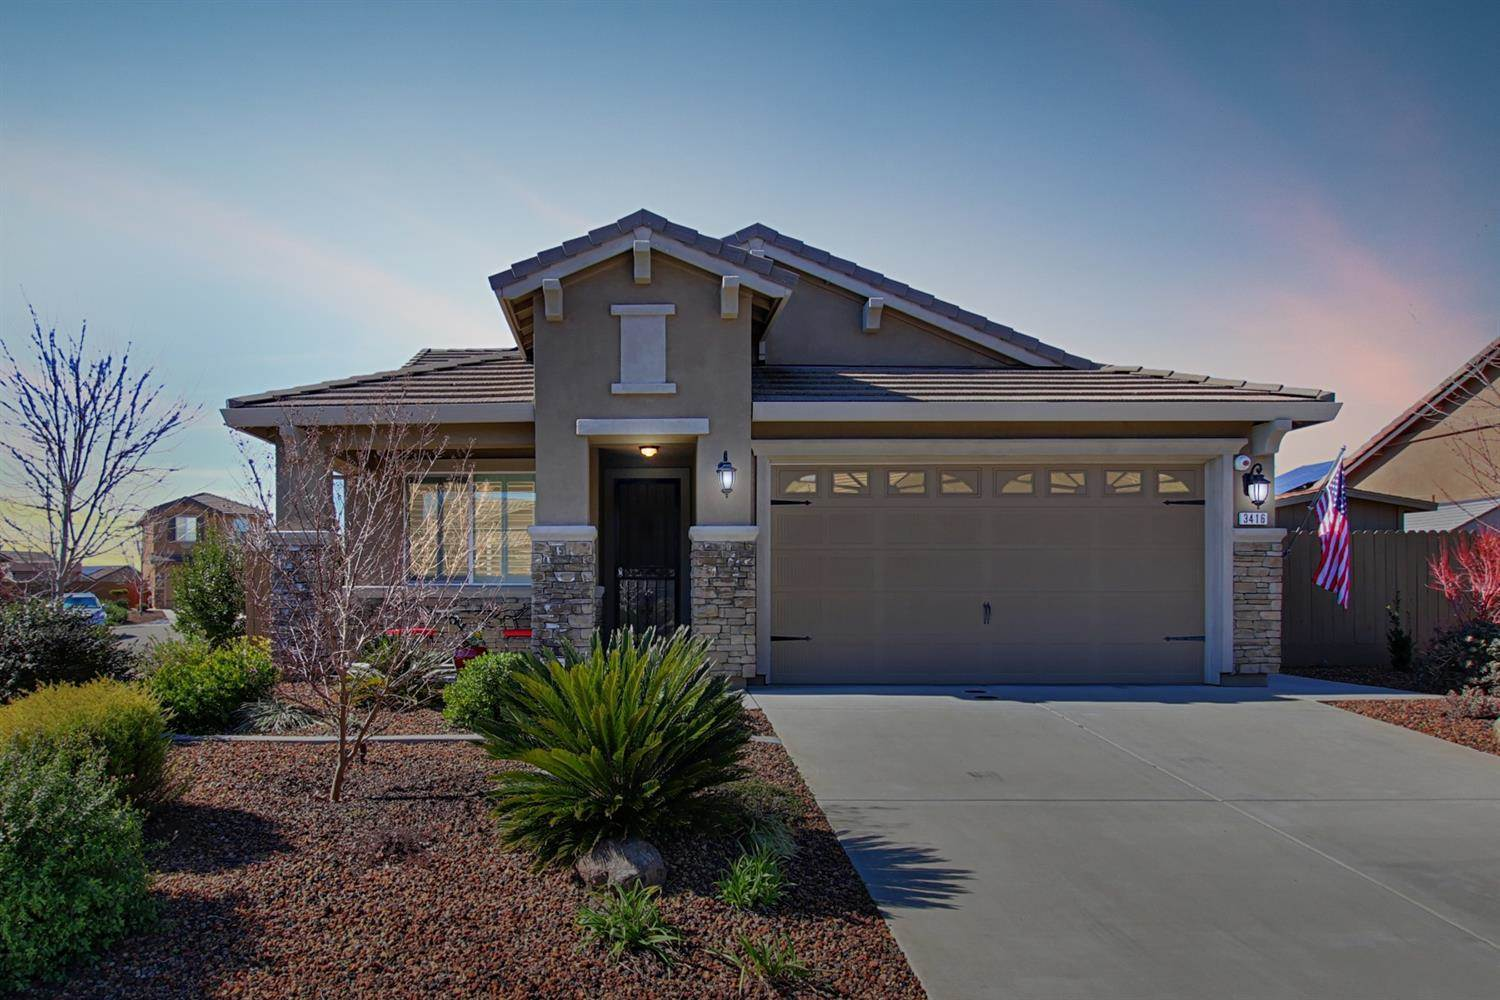 3416 Oselot Way, Gold River, California